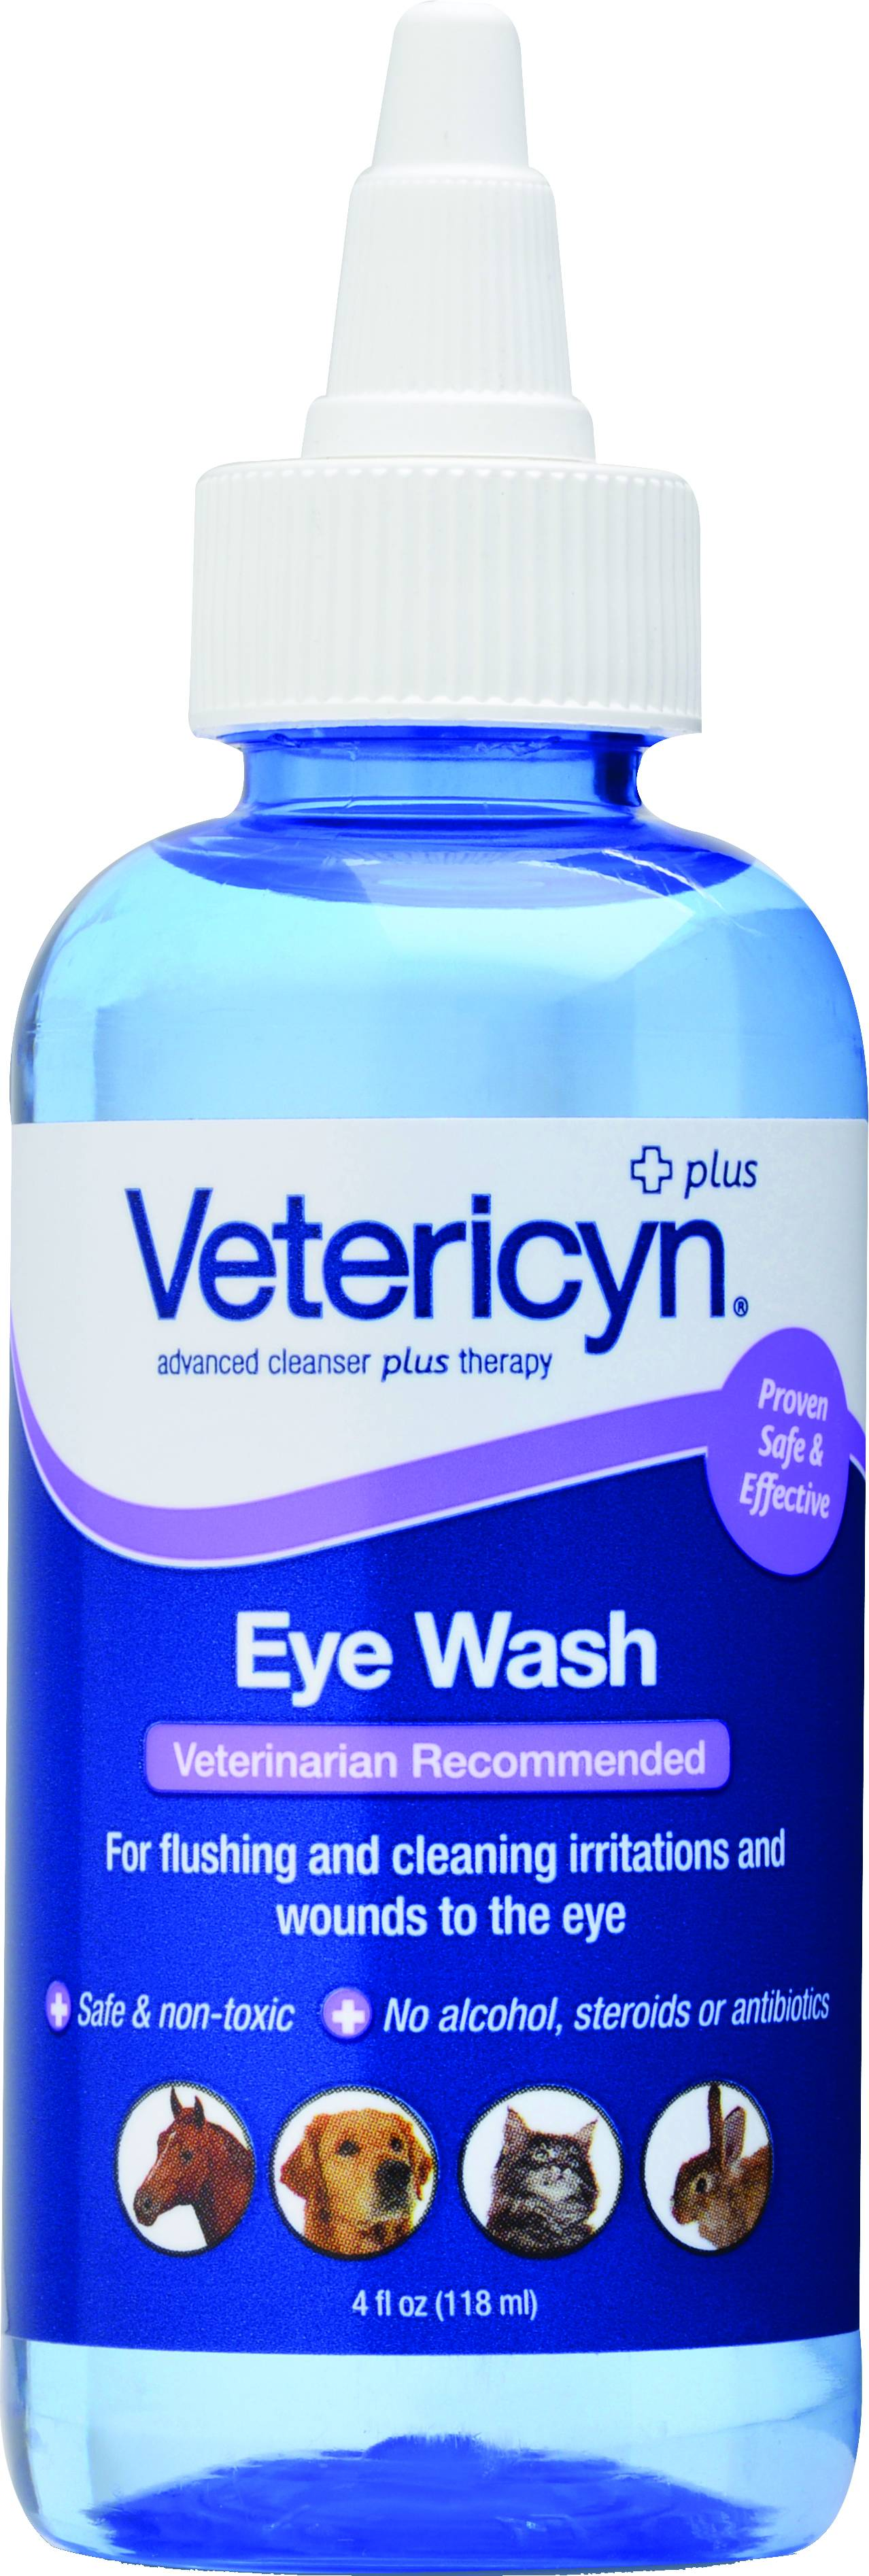 Vetericyn All Animal Eye Wash - 4 oz.